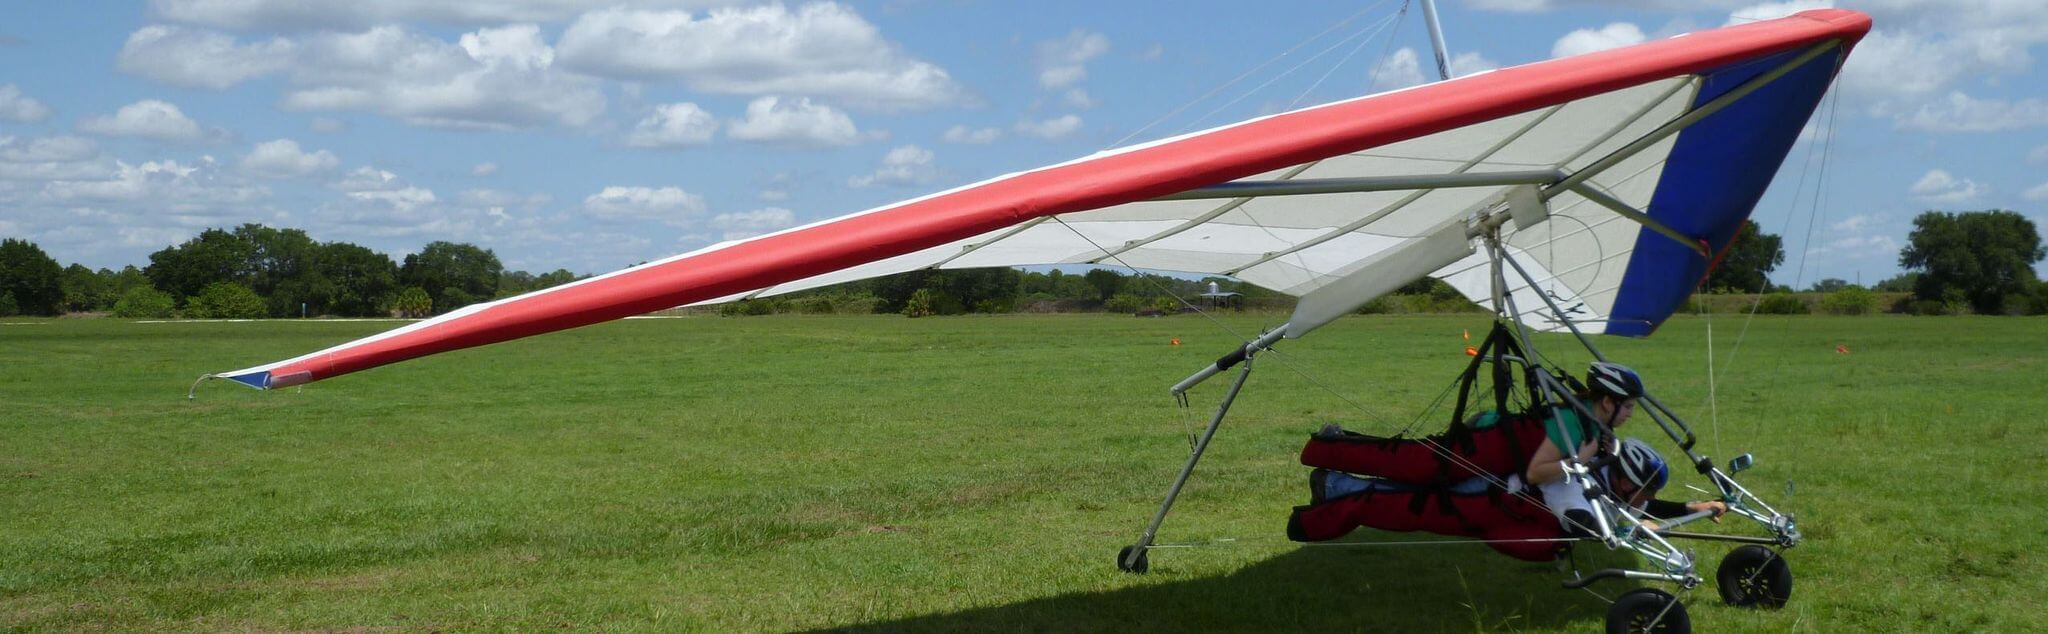 Hang Gliding in Jaén